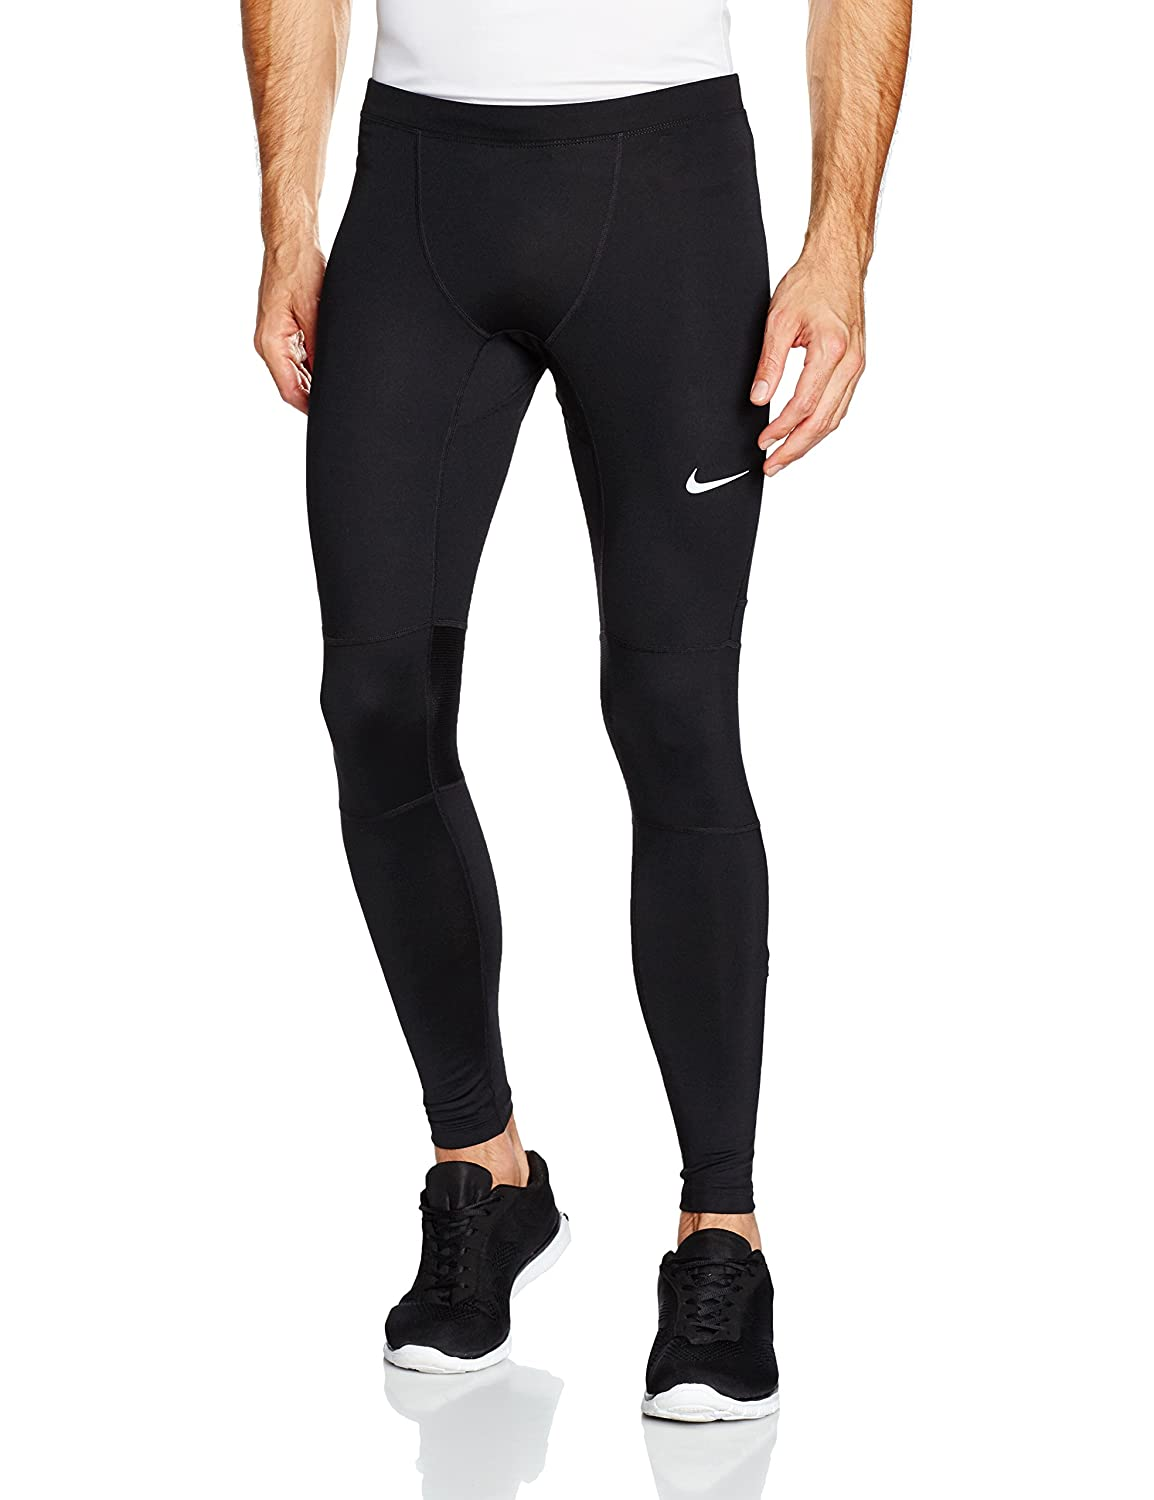 1. Men's Power Essential Run